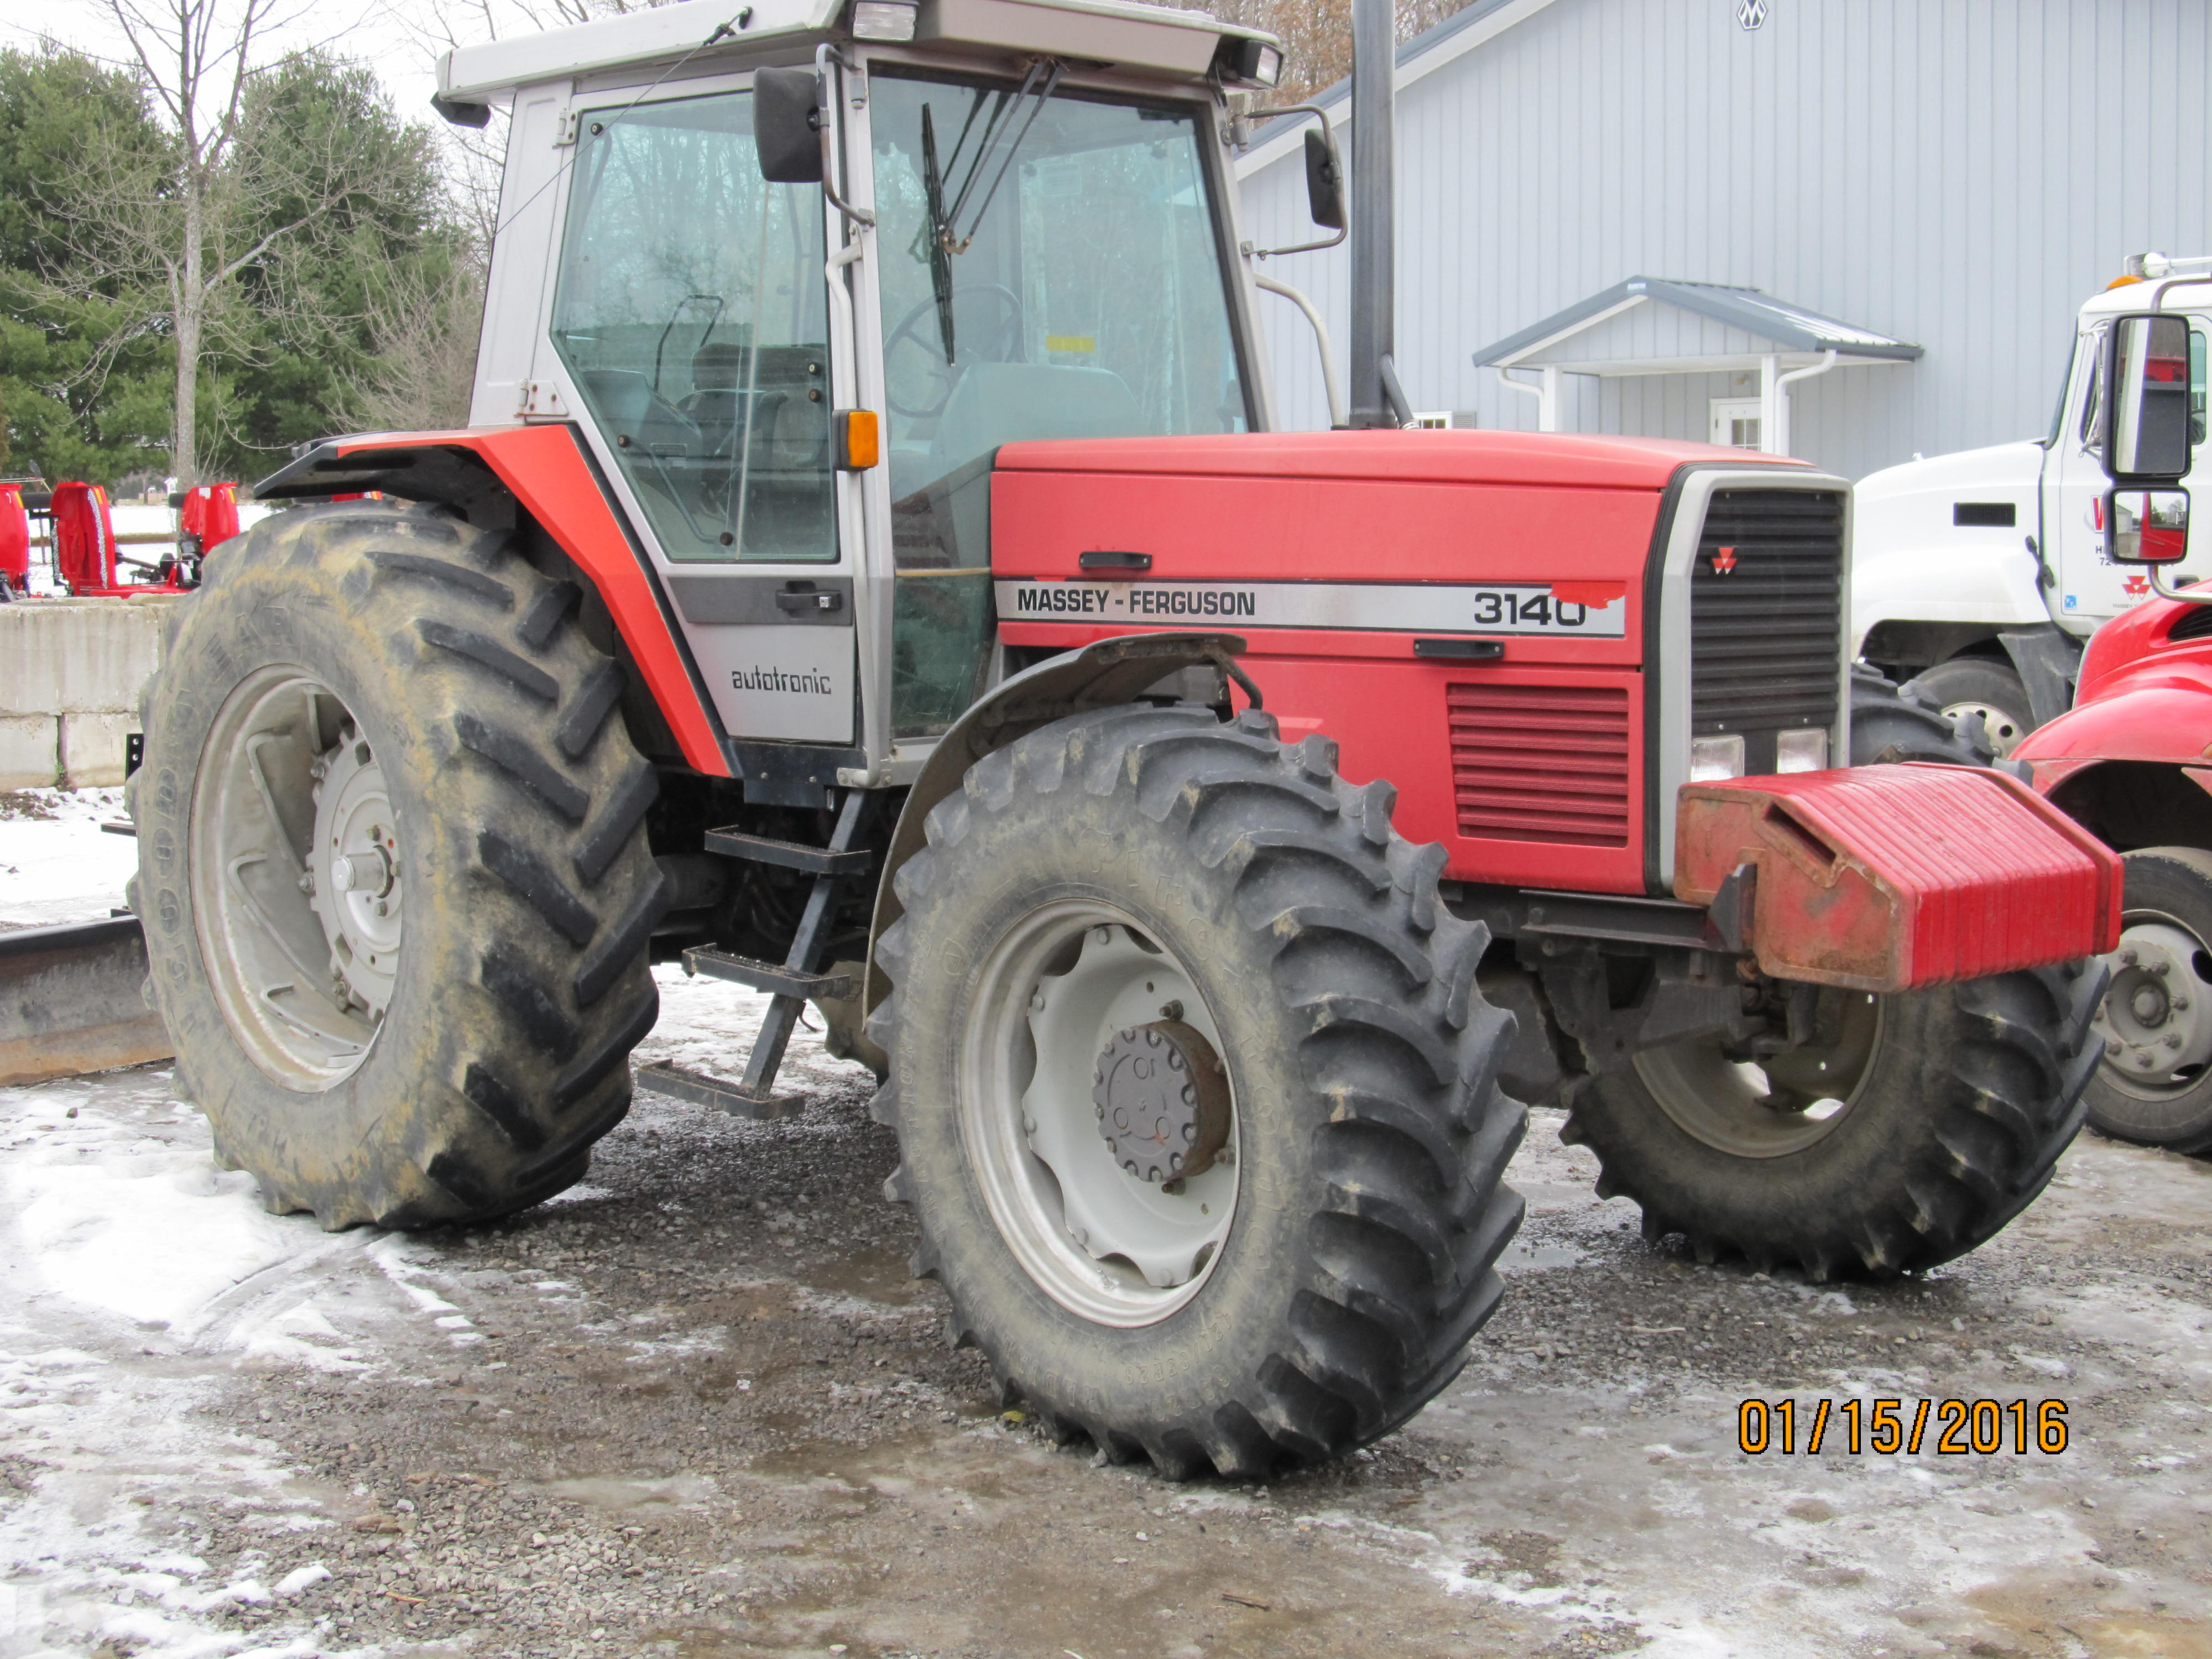 1990 Massey Ferguson 3140 Tractor for sale in Hermitage, PA